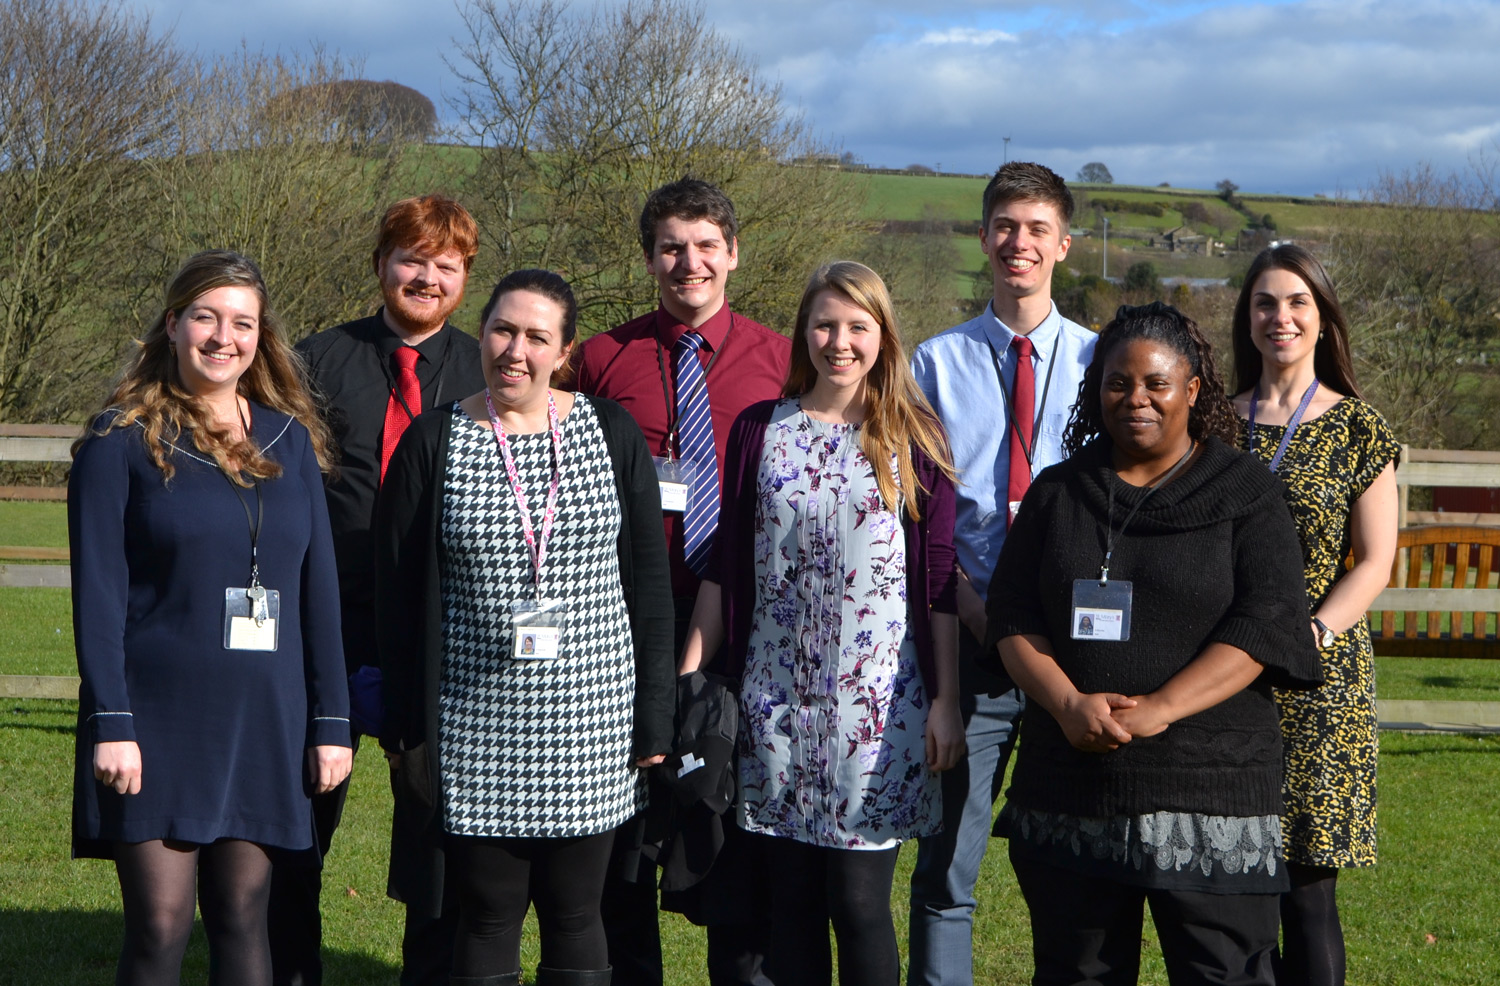 Photo: We are very proud of the teachers training at St. Mary's Teaching School. Commemorative photo taken near St. Mary's Menston Memorial Garden,25 February 2016